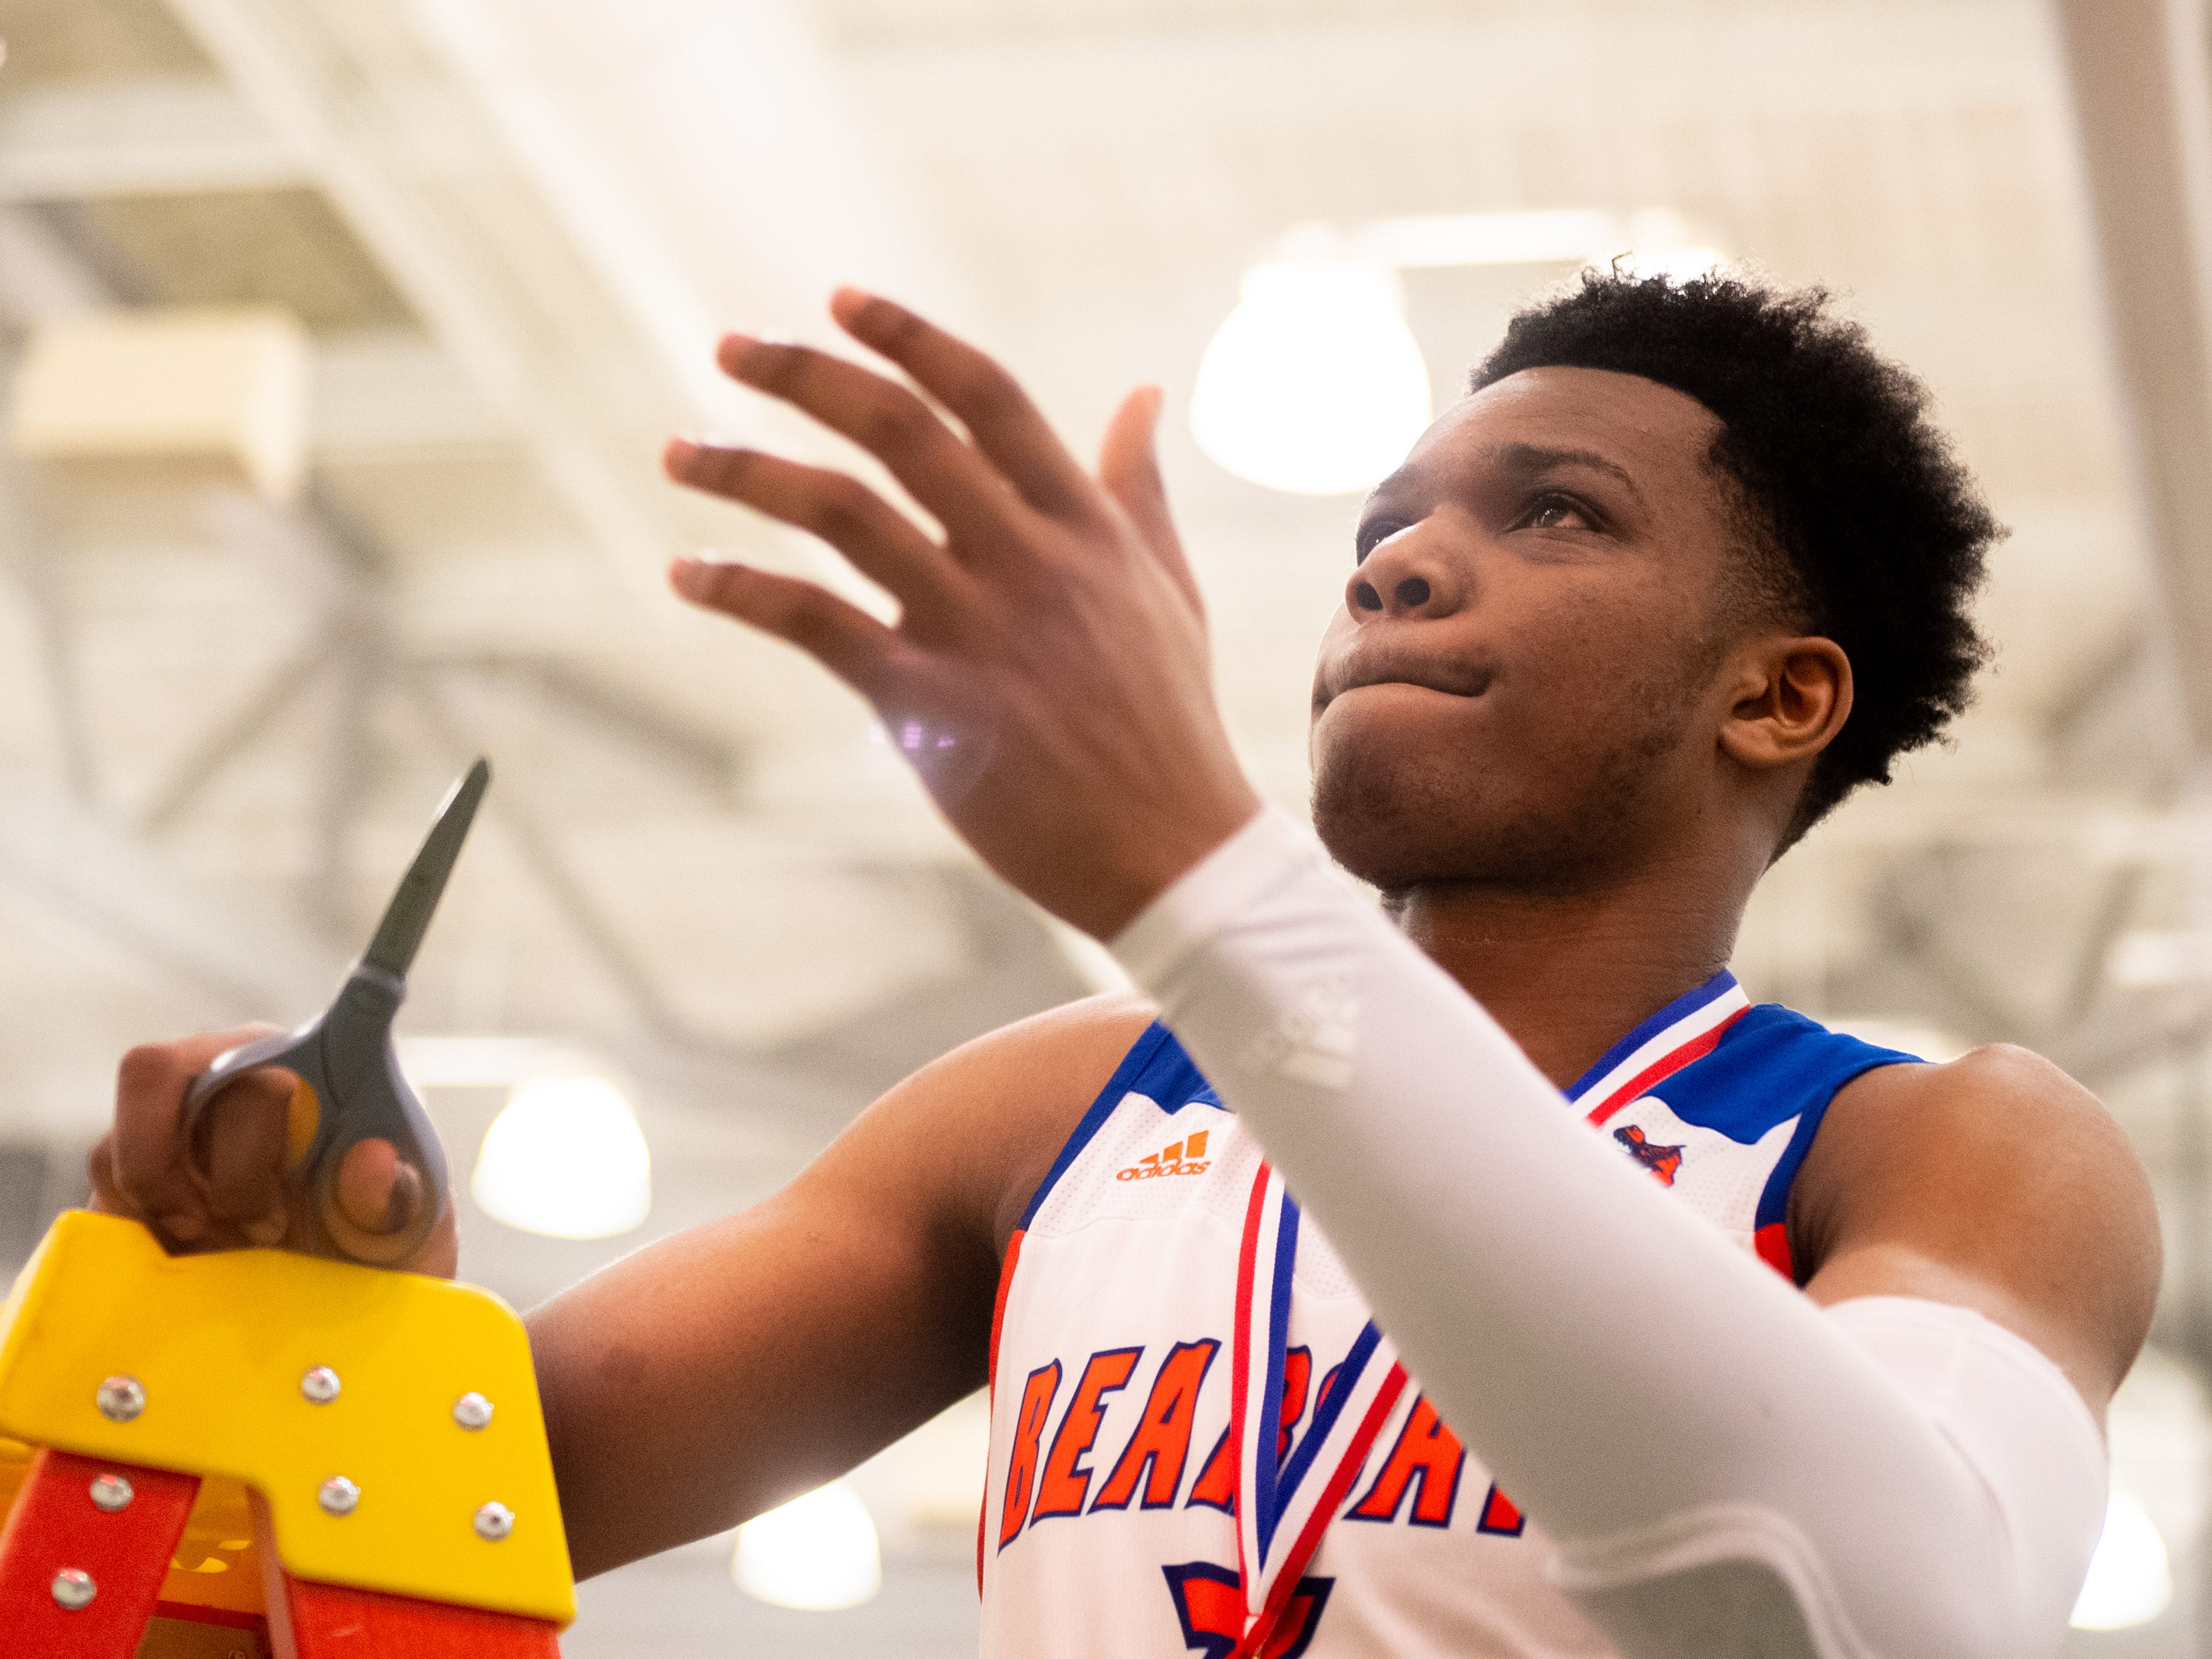 Clovis Gallon Jr. (3) picks a part of the net to take after the YAIAA Division I title game between York High and New Oxford, Friday, February 15, 2019 at York College. The Bearcats defeated the Colonials 54 to 50.